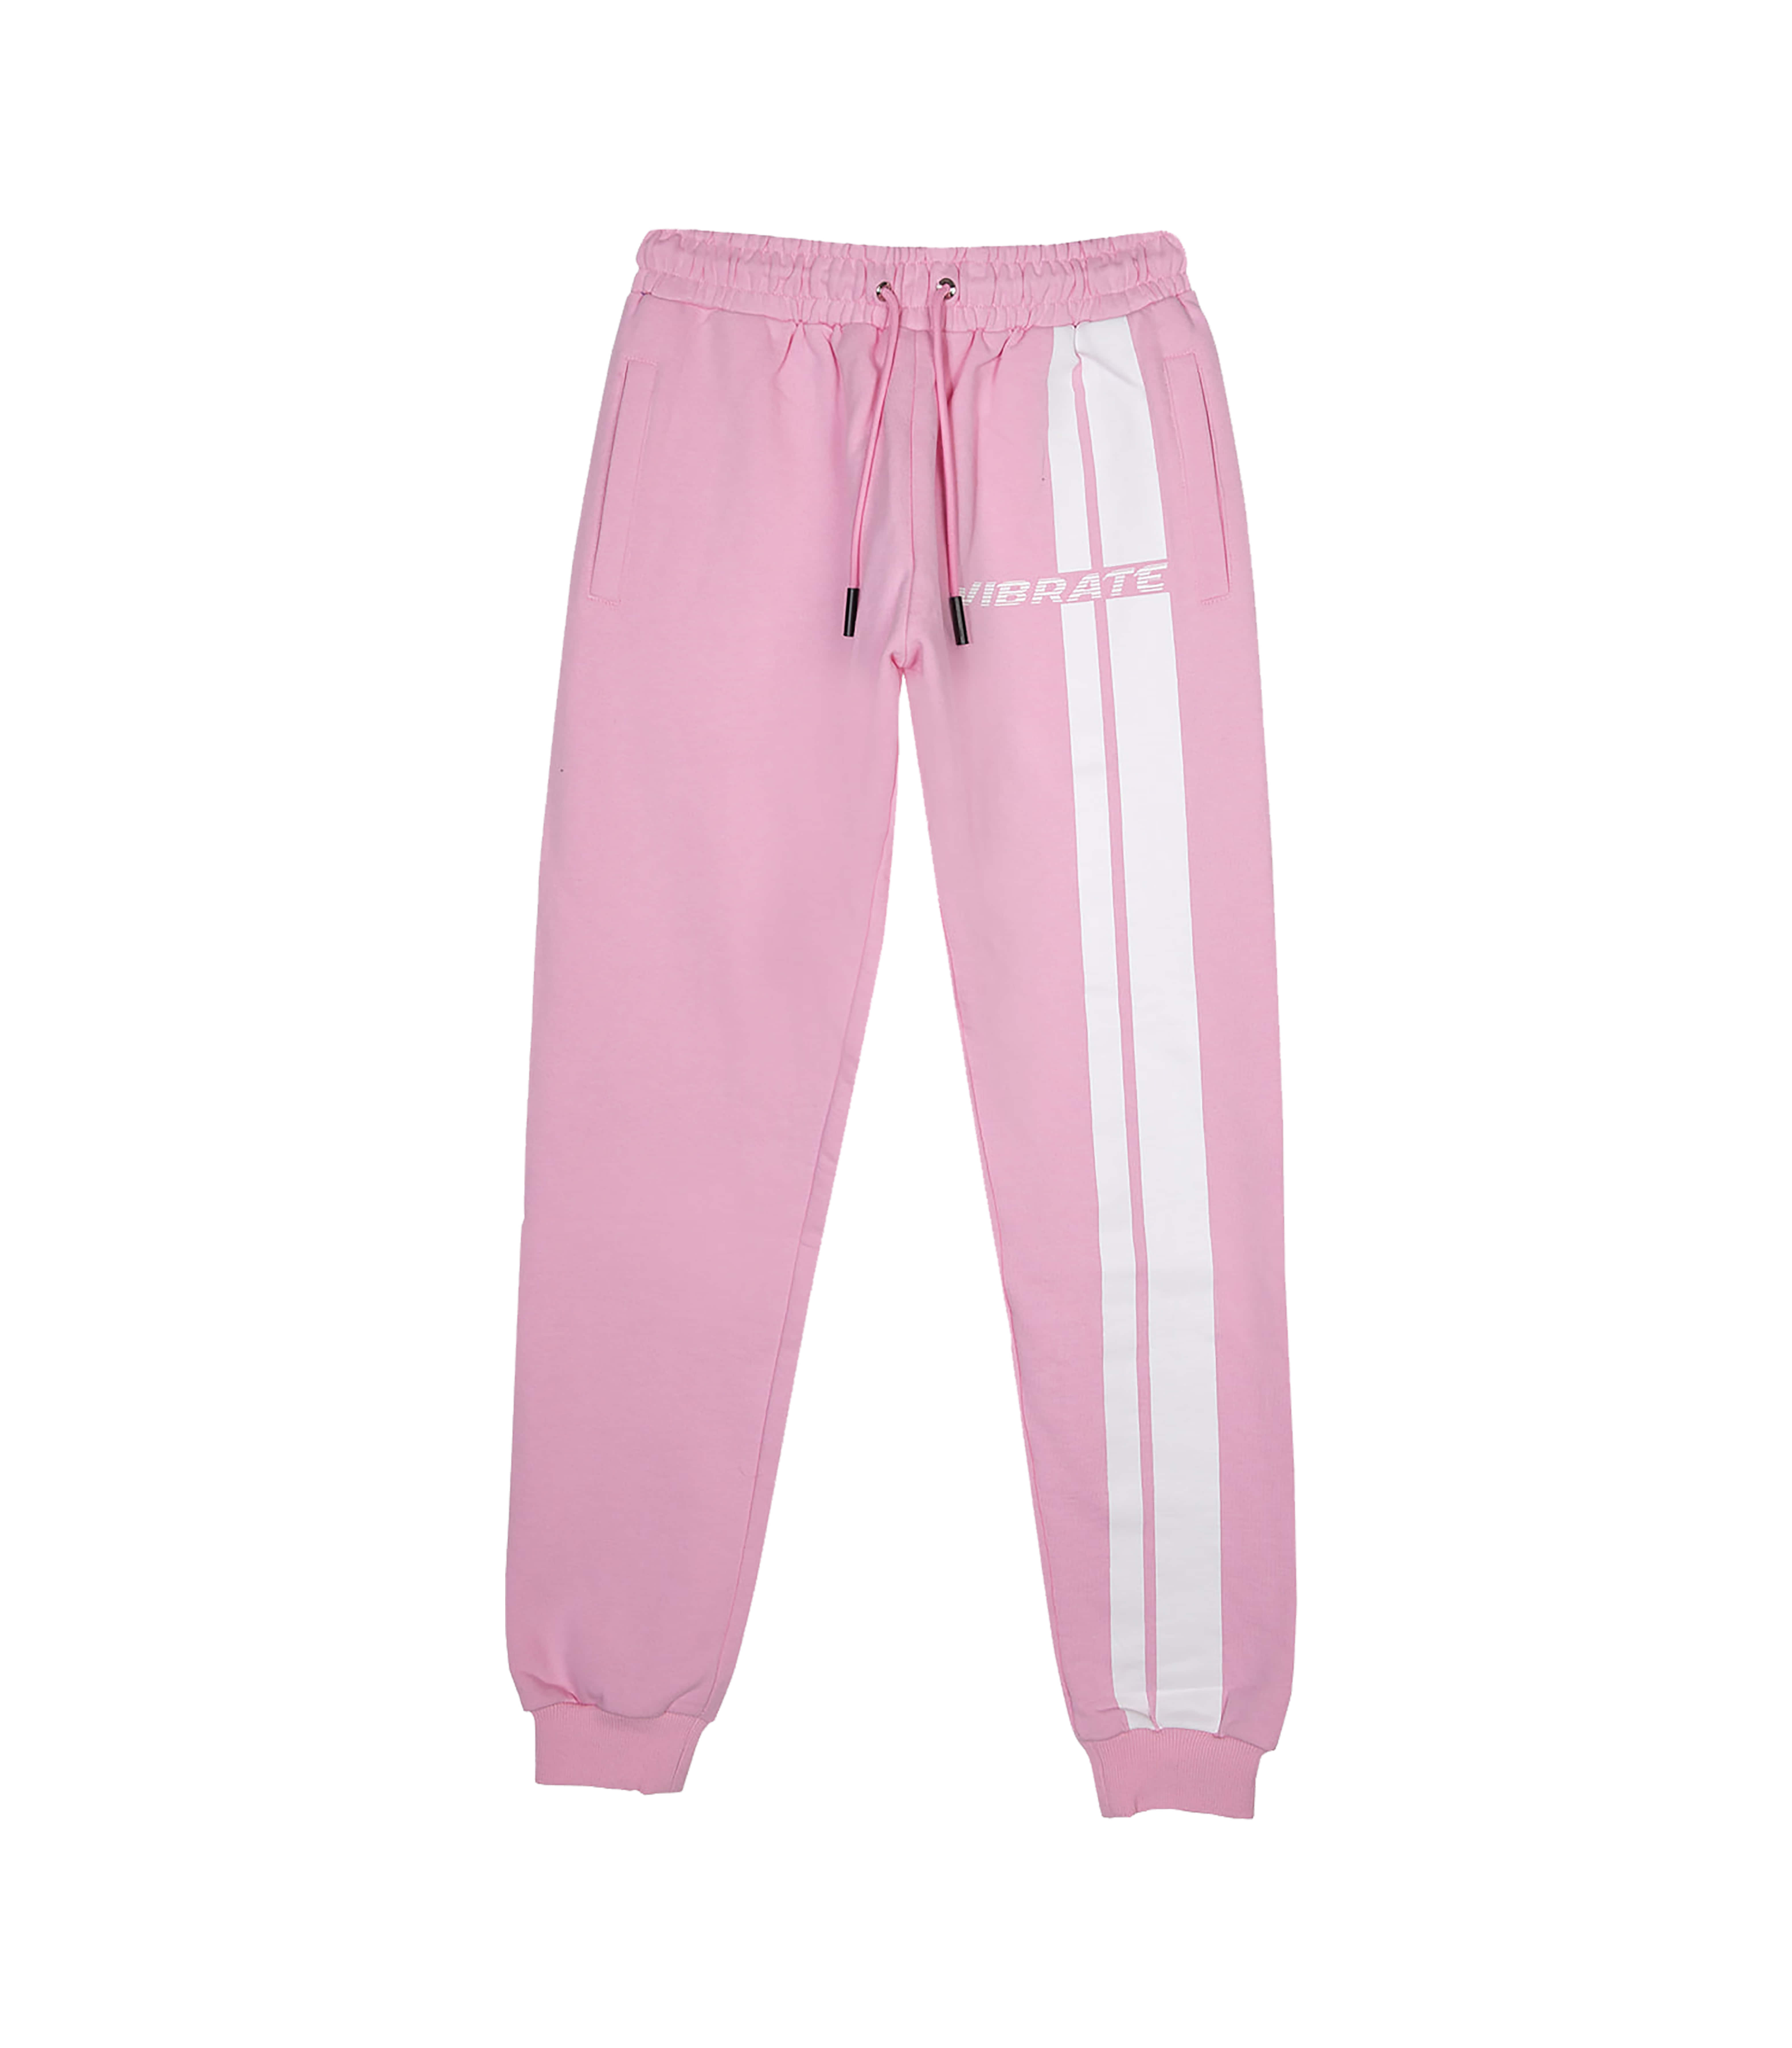 VIBRATE - TRAFFIC ROAD LOGO JOGGER PANTS (PINK)